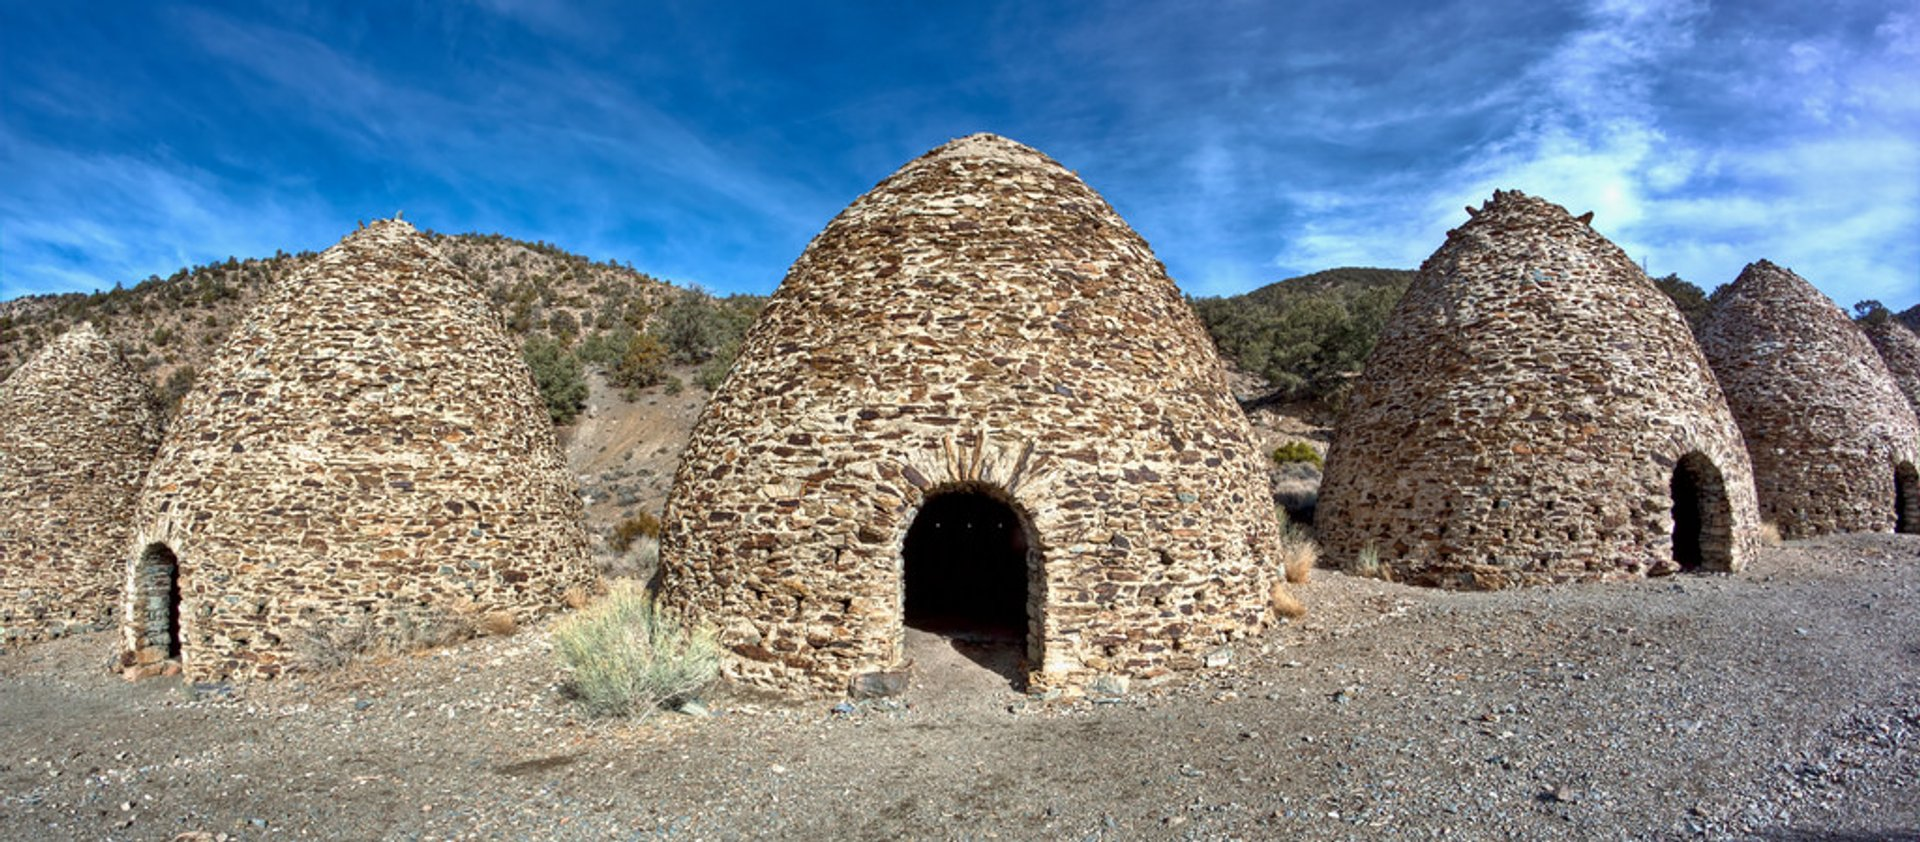 Best time to see Wildrose Charcoal Kilns in Death Valley 2020